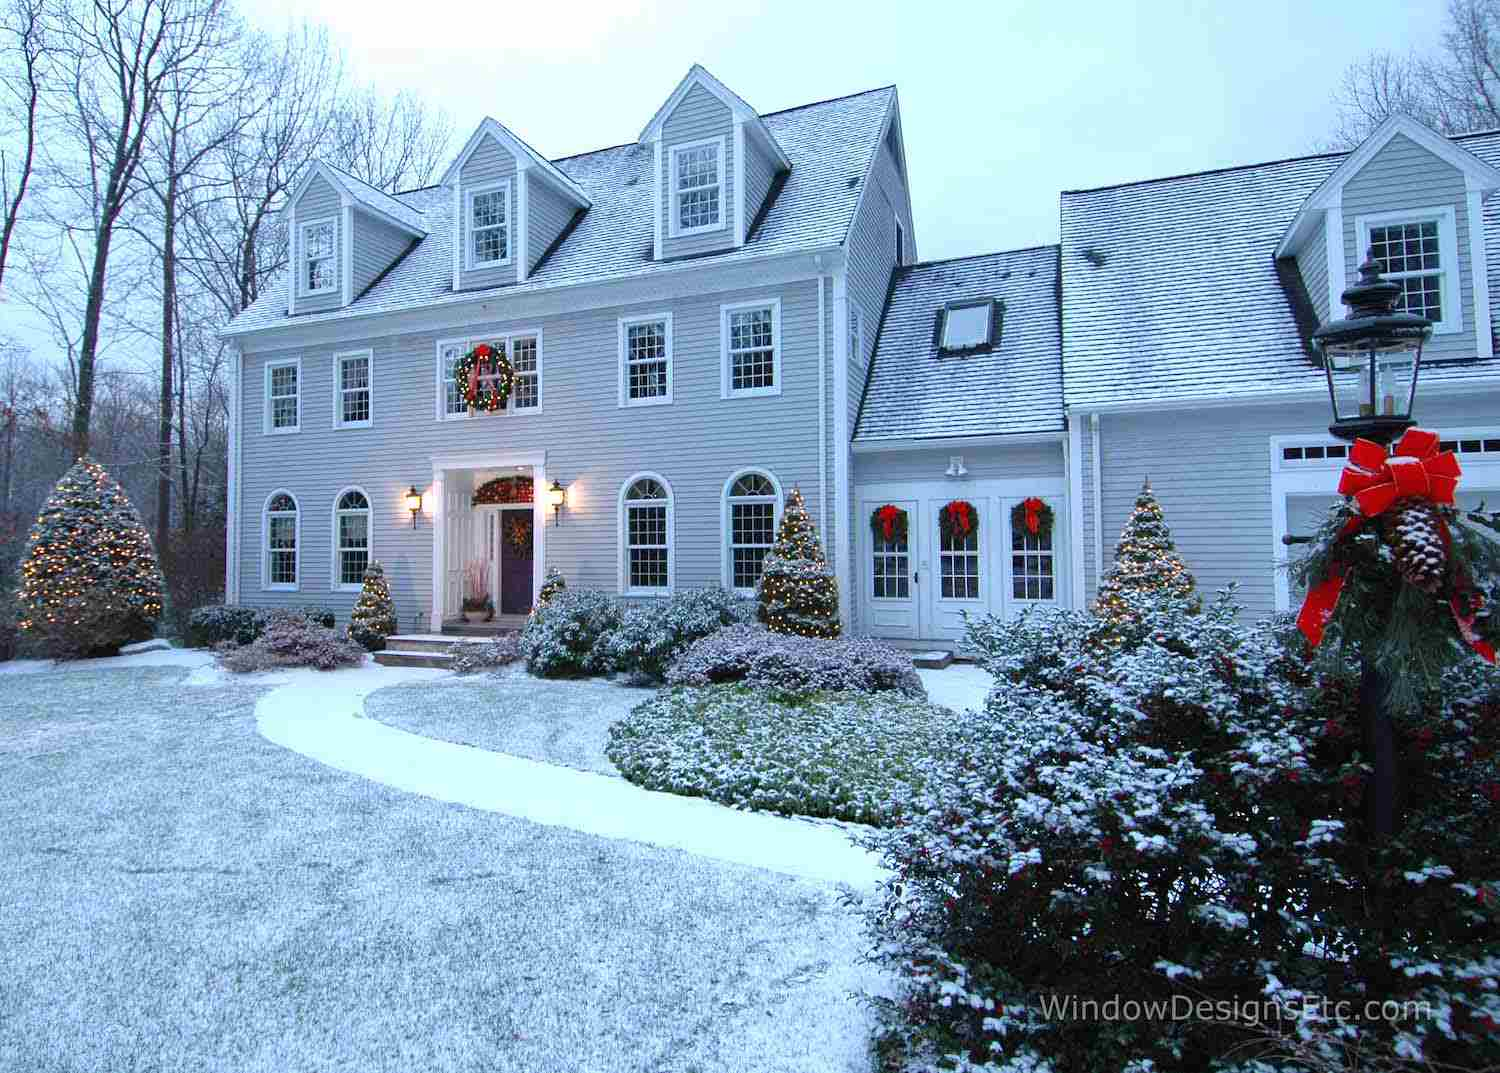 Winter Renovations Could Take Less Time and Money